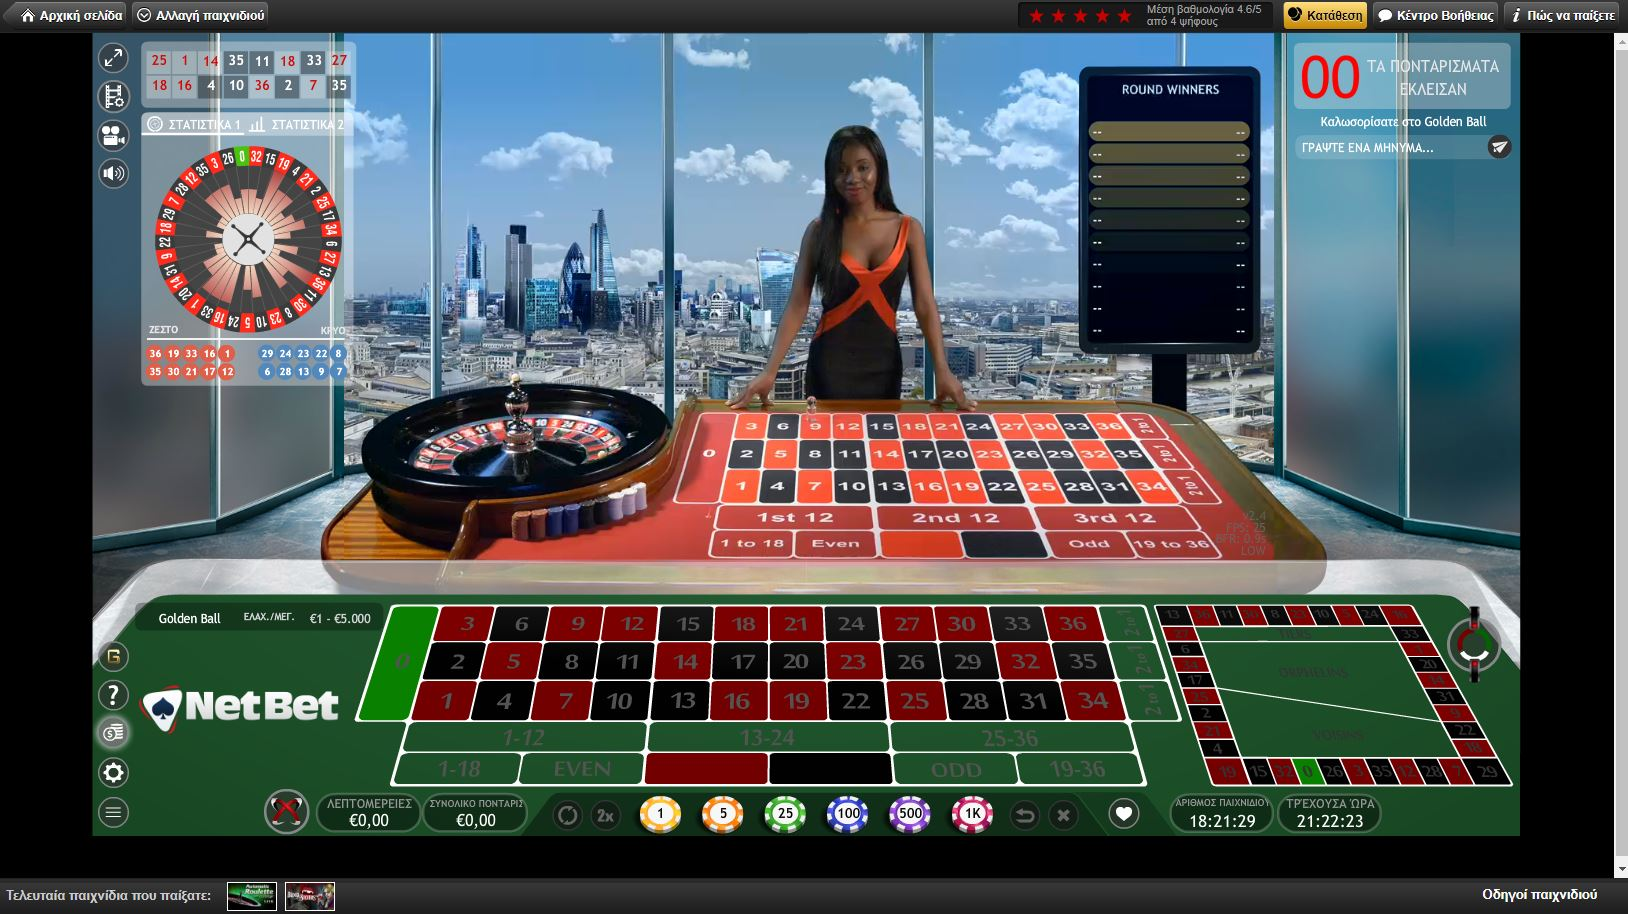 netbet live casino extreme golden ball roulette